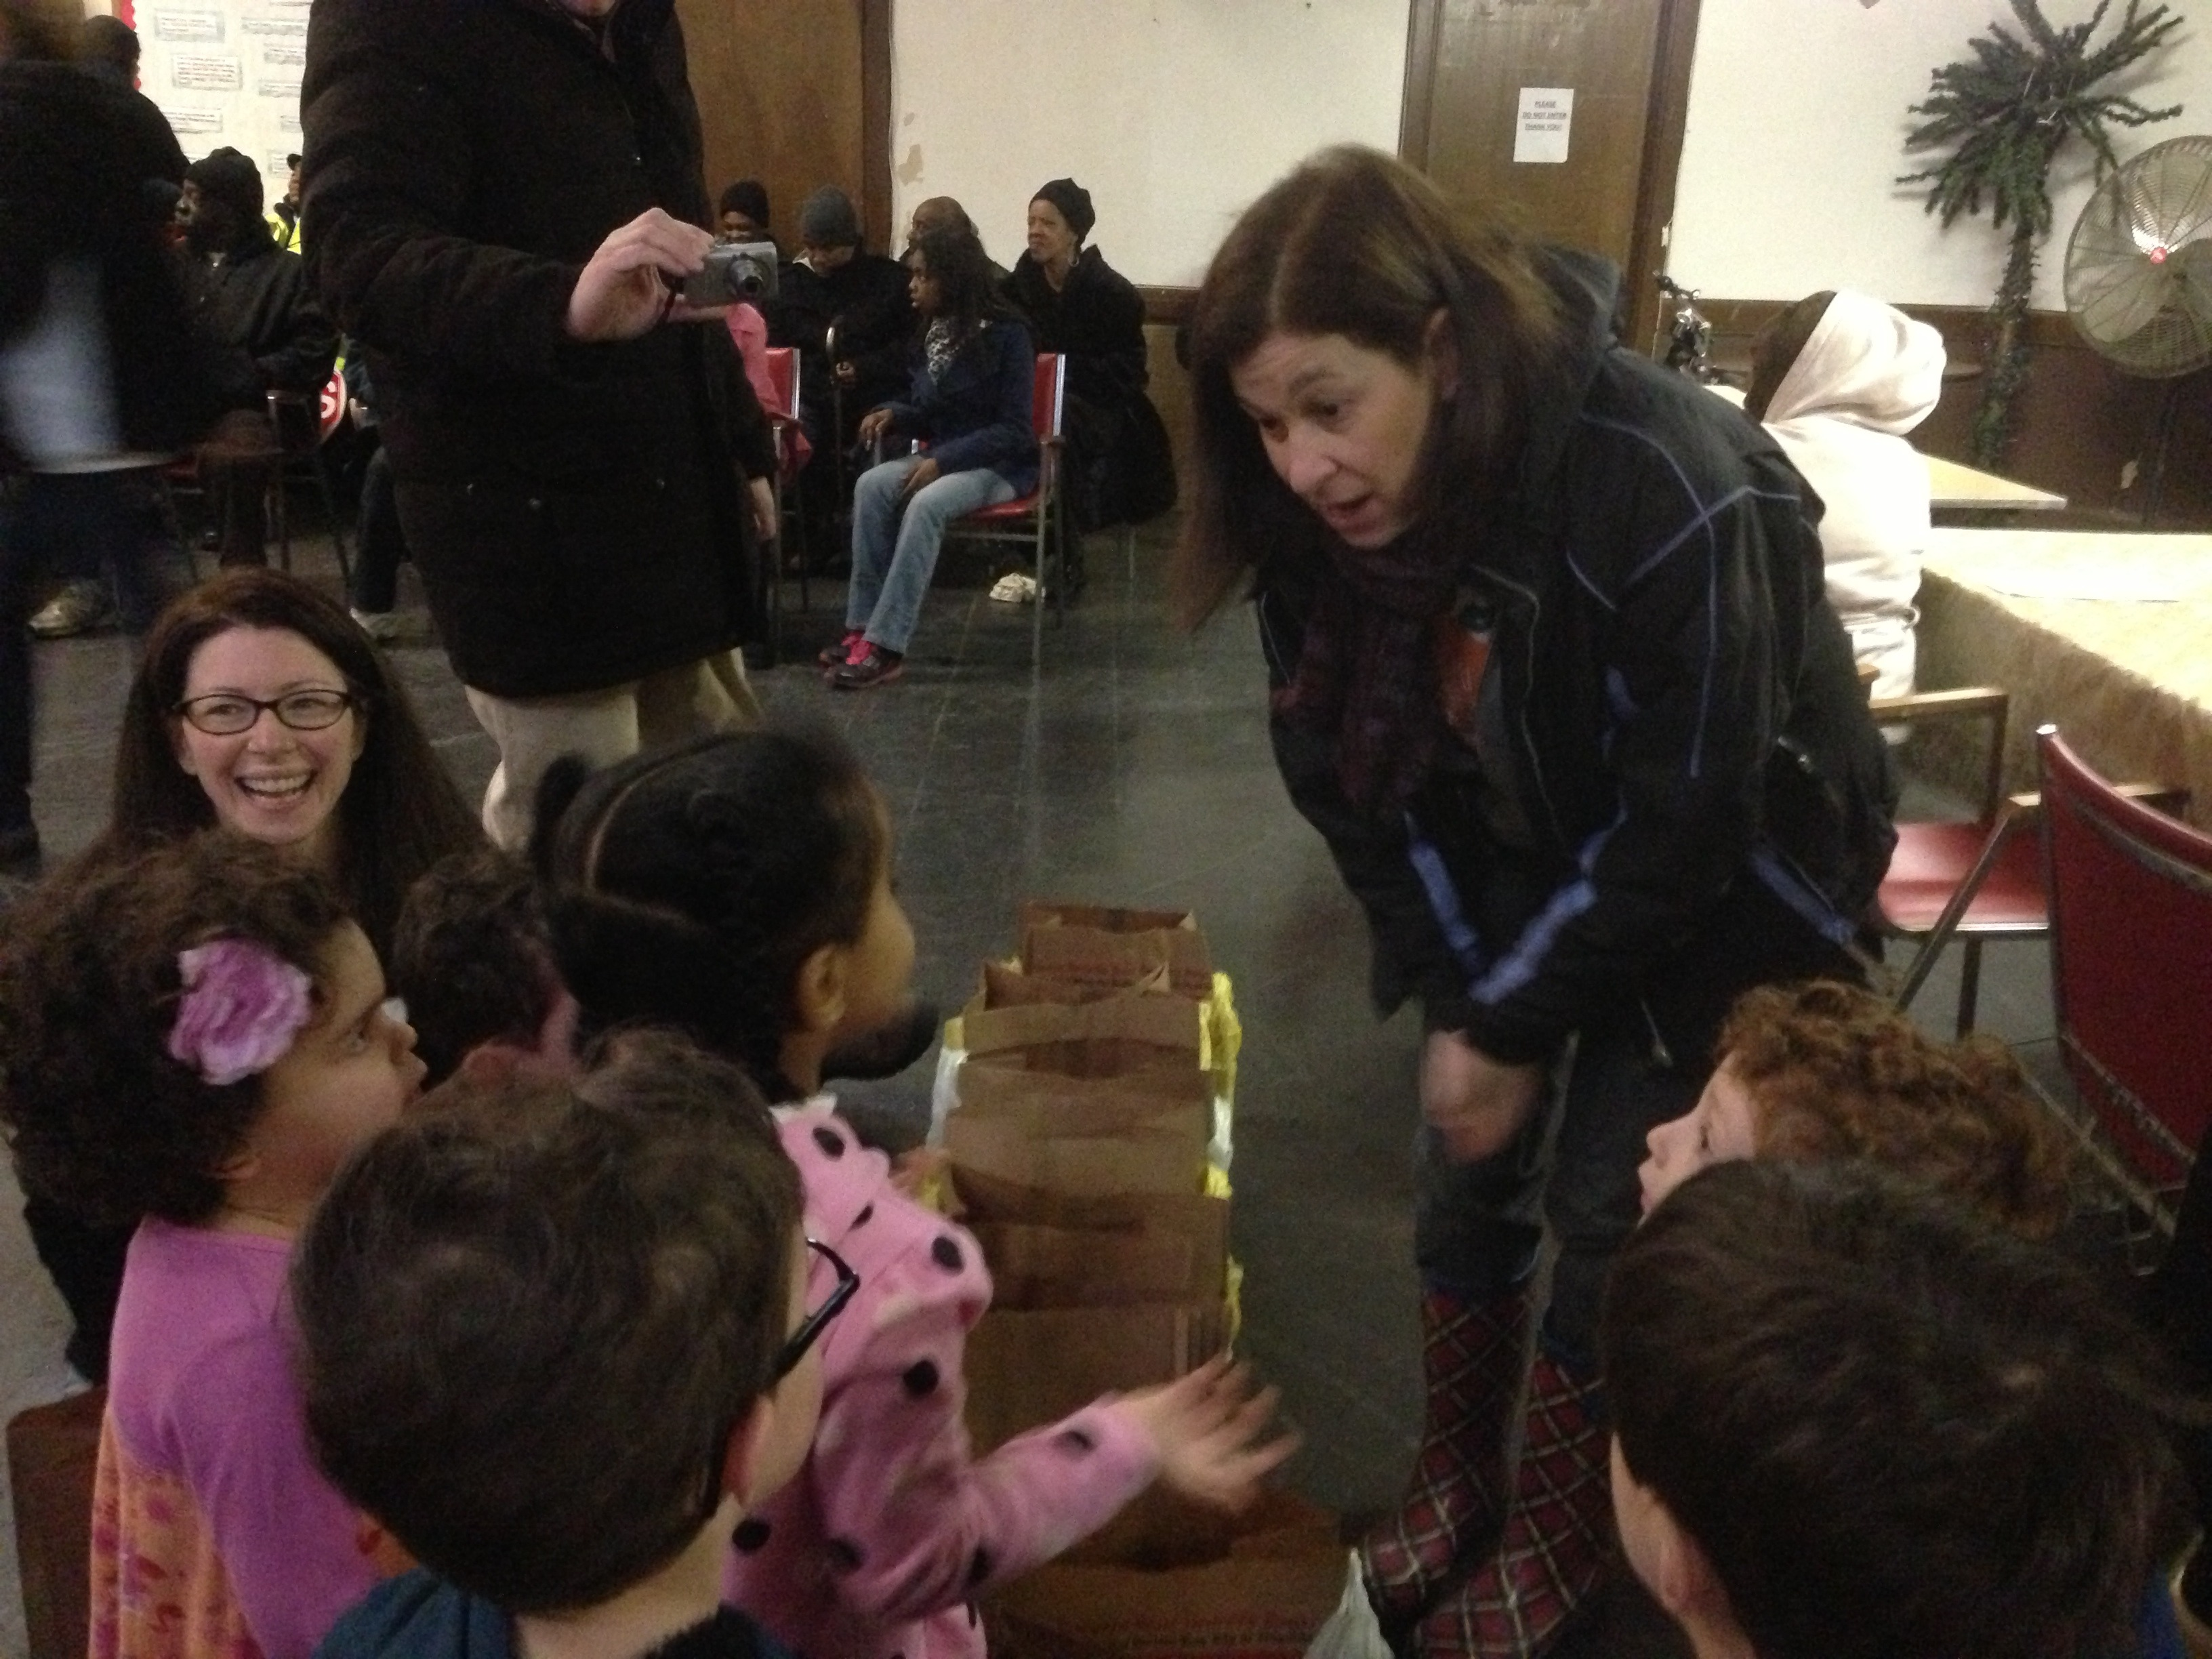 27b51295be72c6f56ff3_Preschoolers_at_Food_Pantry_1-25-13.JPG